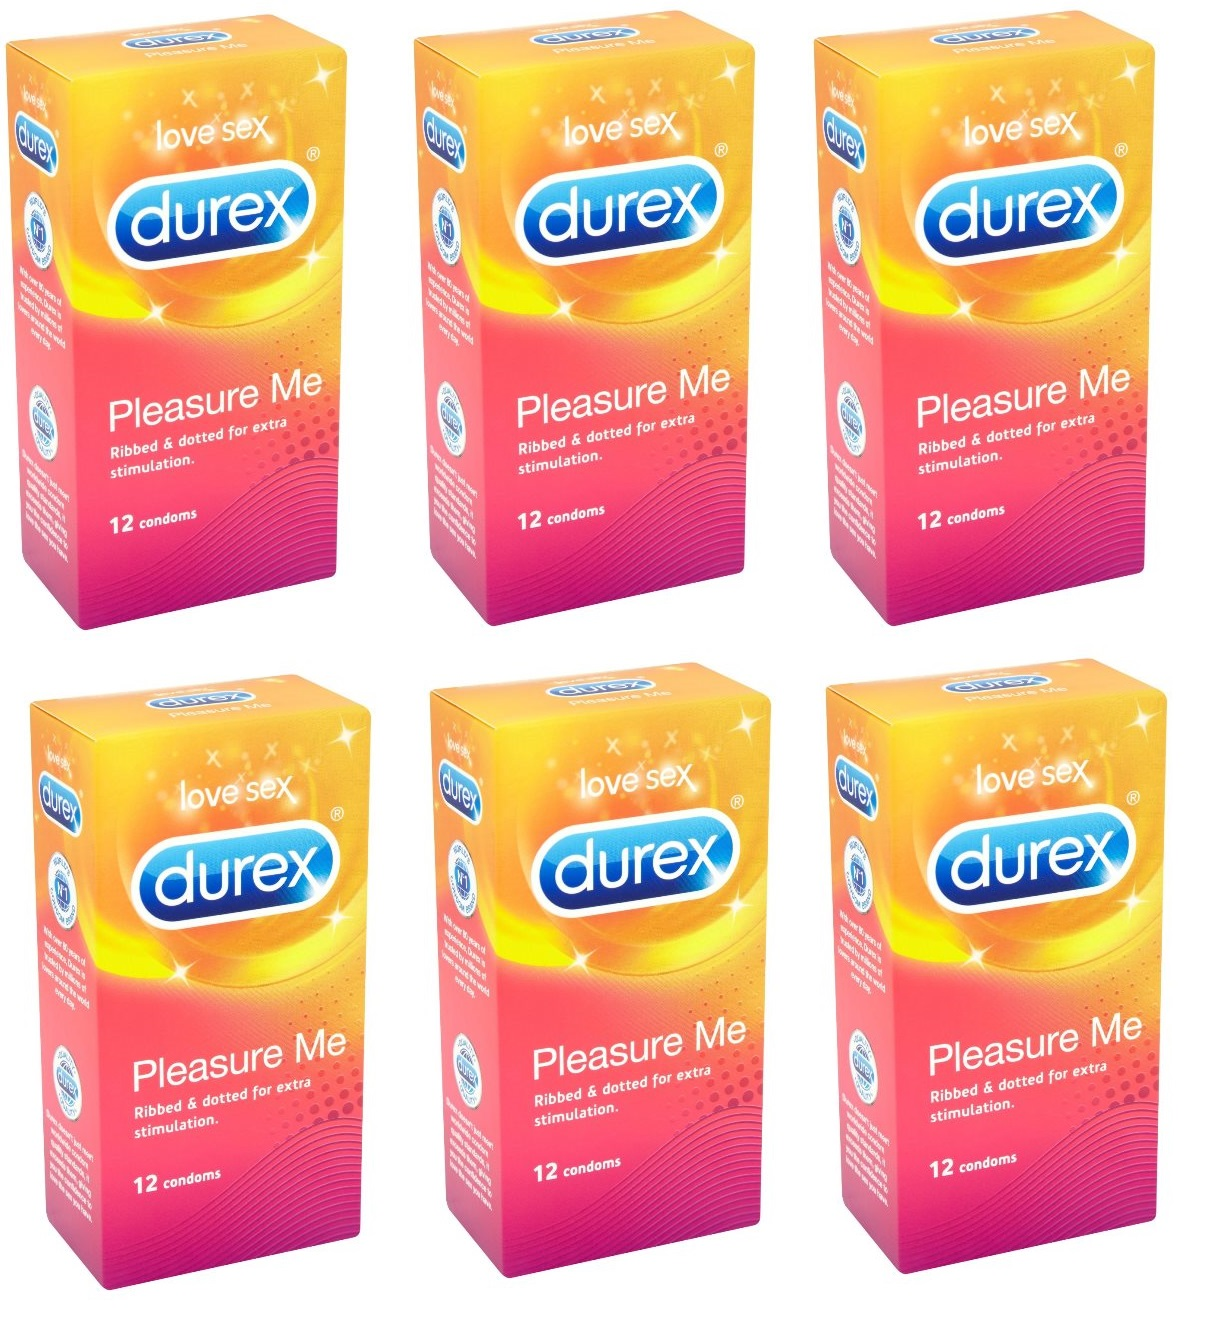 durex feel thin how to use